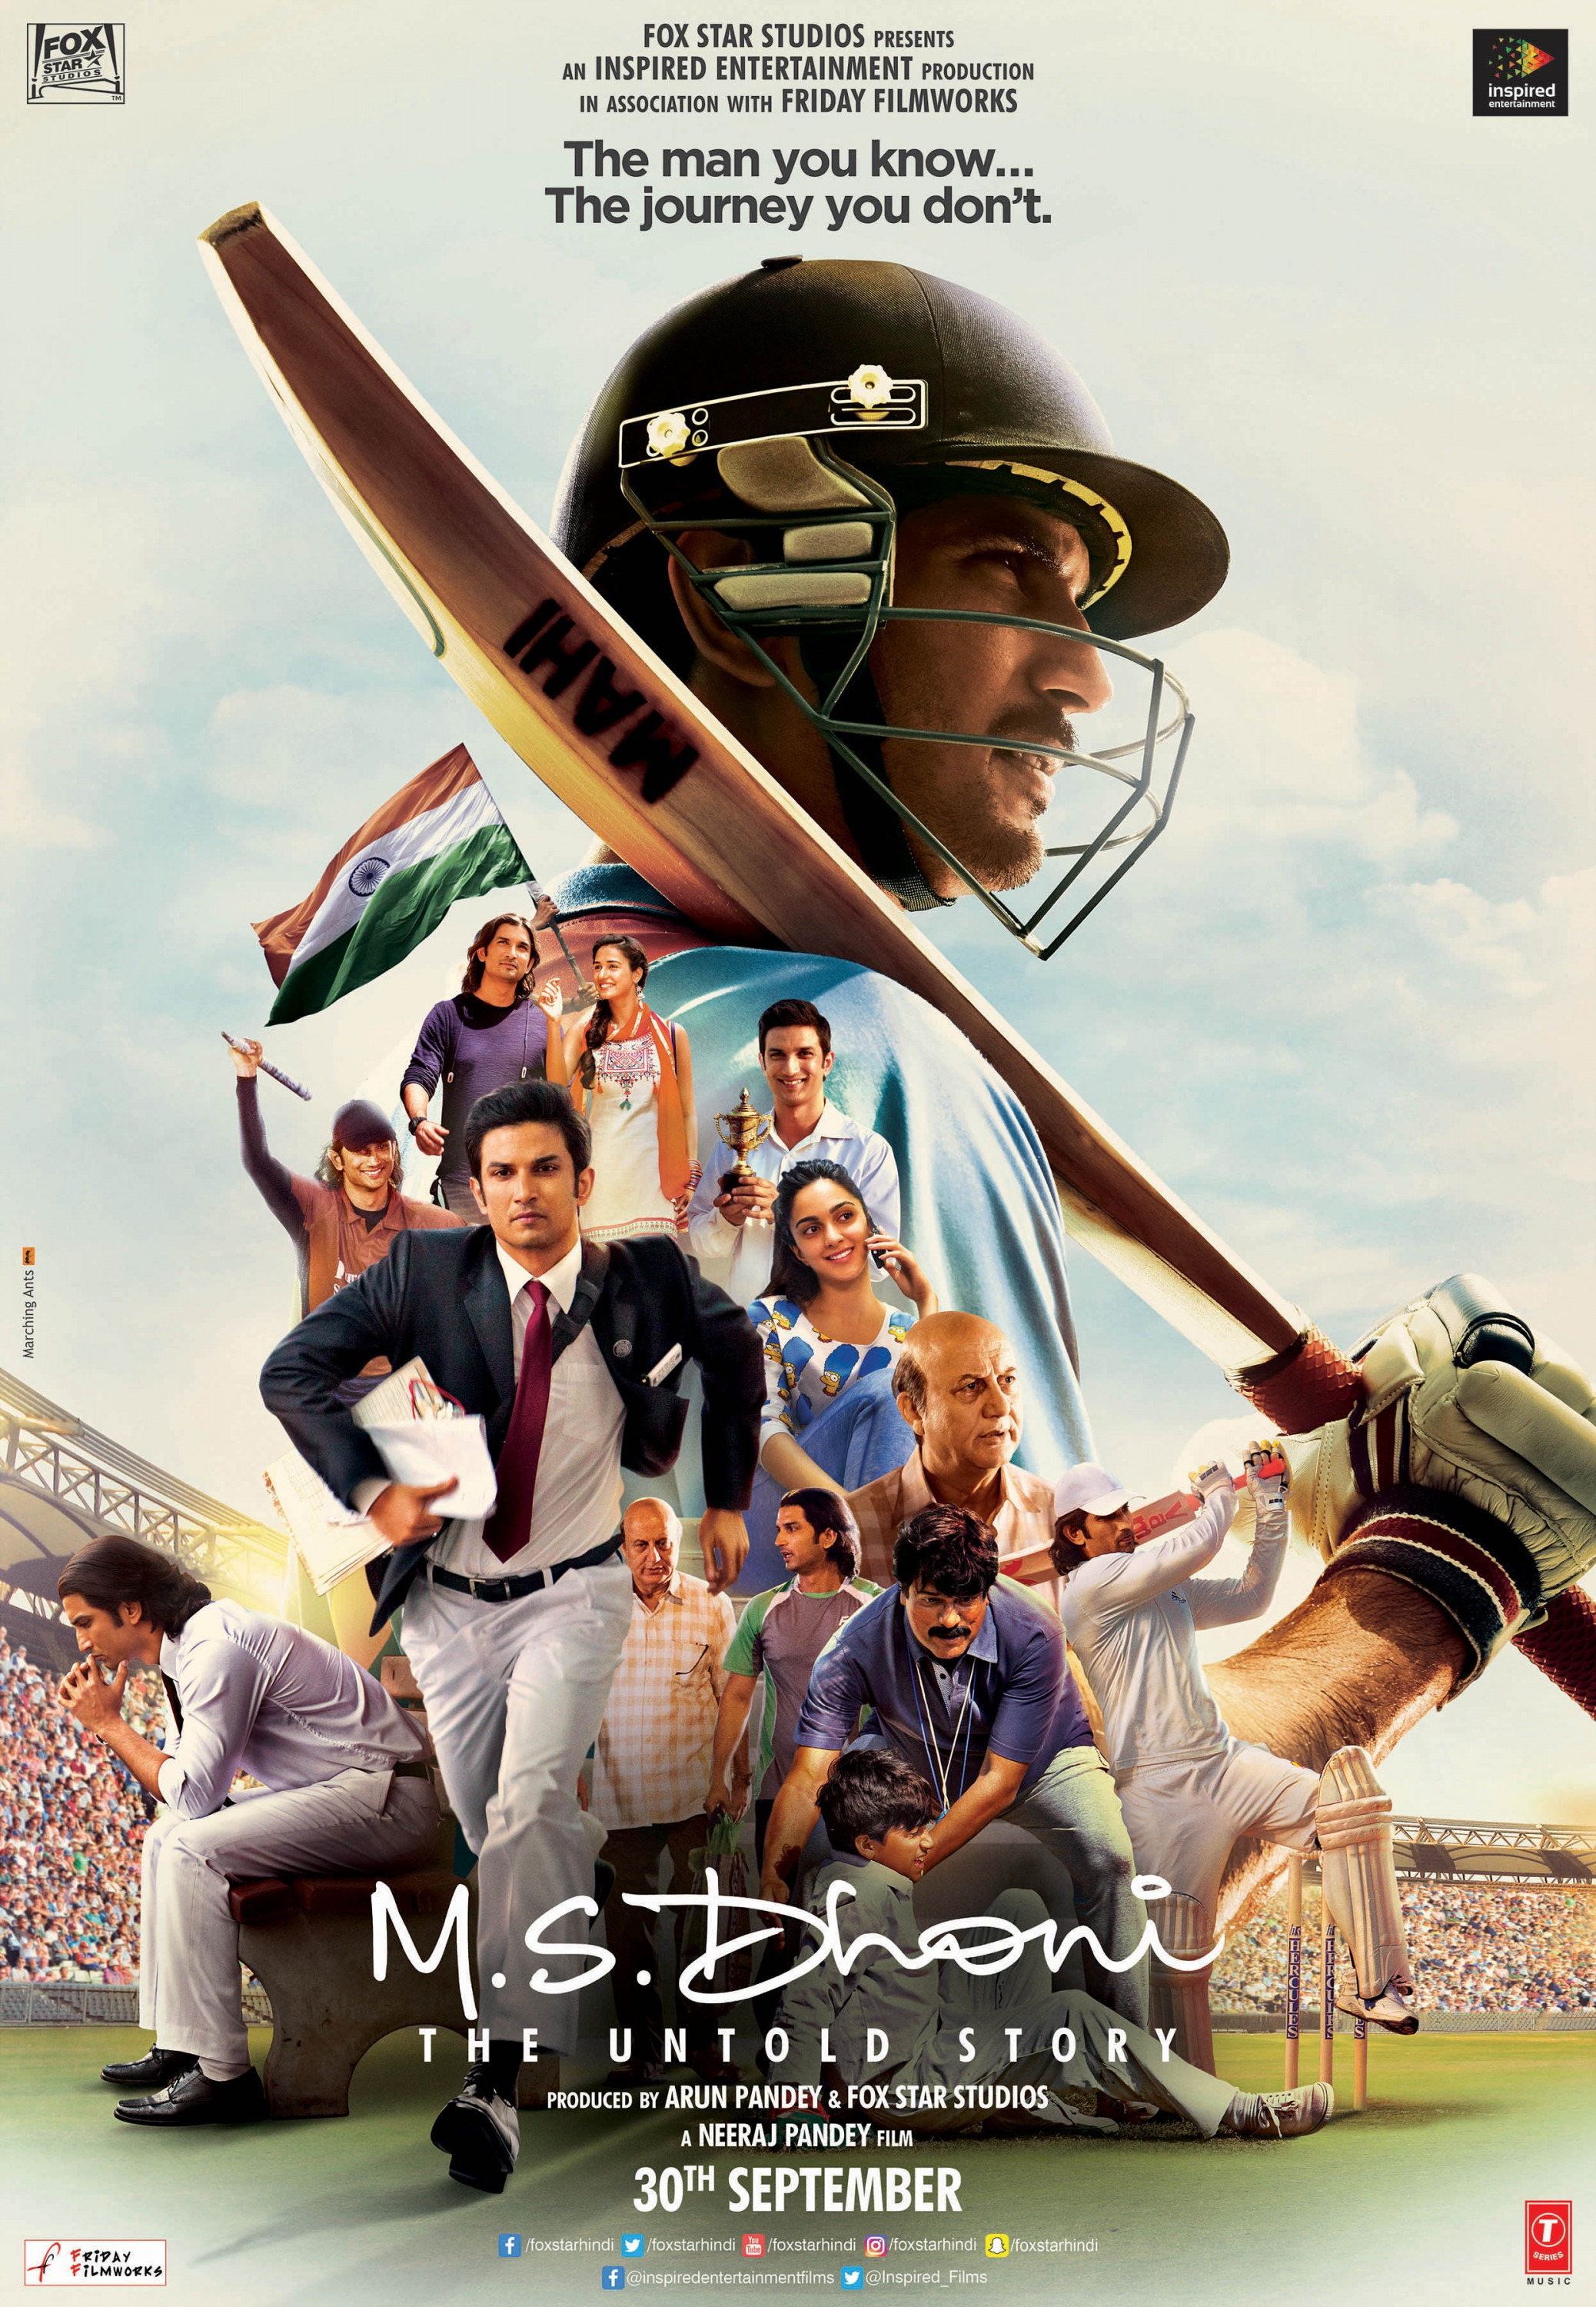 M.S. Dhoni The Untold Story 2016 Hindi 1080p BluRay 2.7GB Download